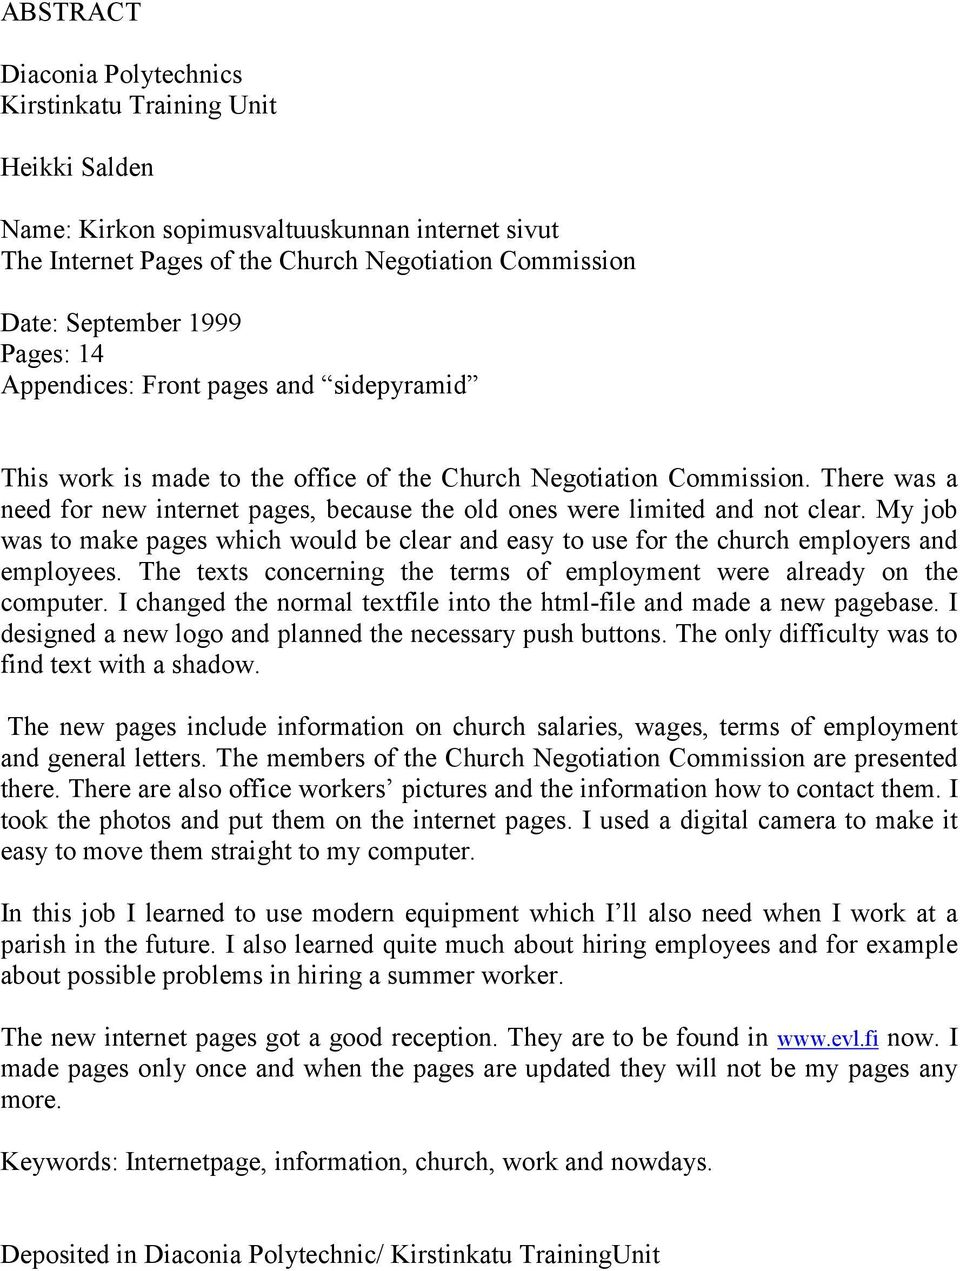 There was a need for new internet pages, because the old ones were limited and not clear. My job was to make pages which would be clear and easy to use for the church employers and employees.